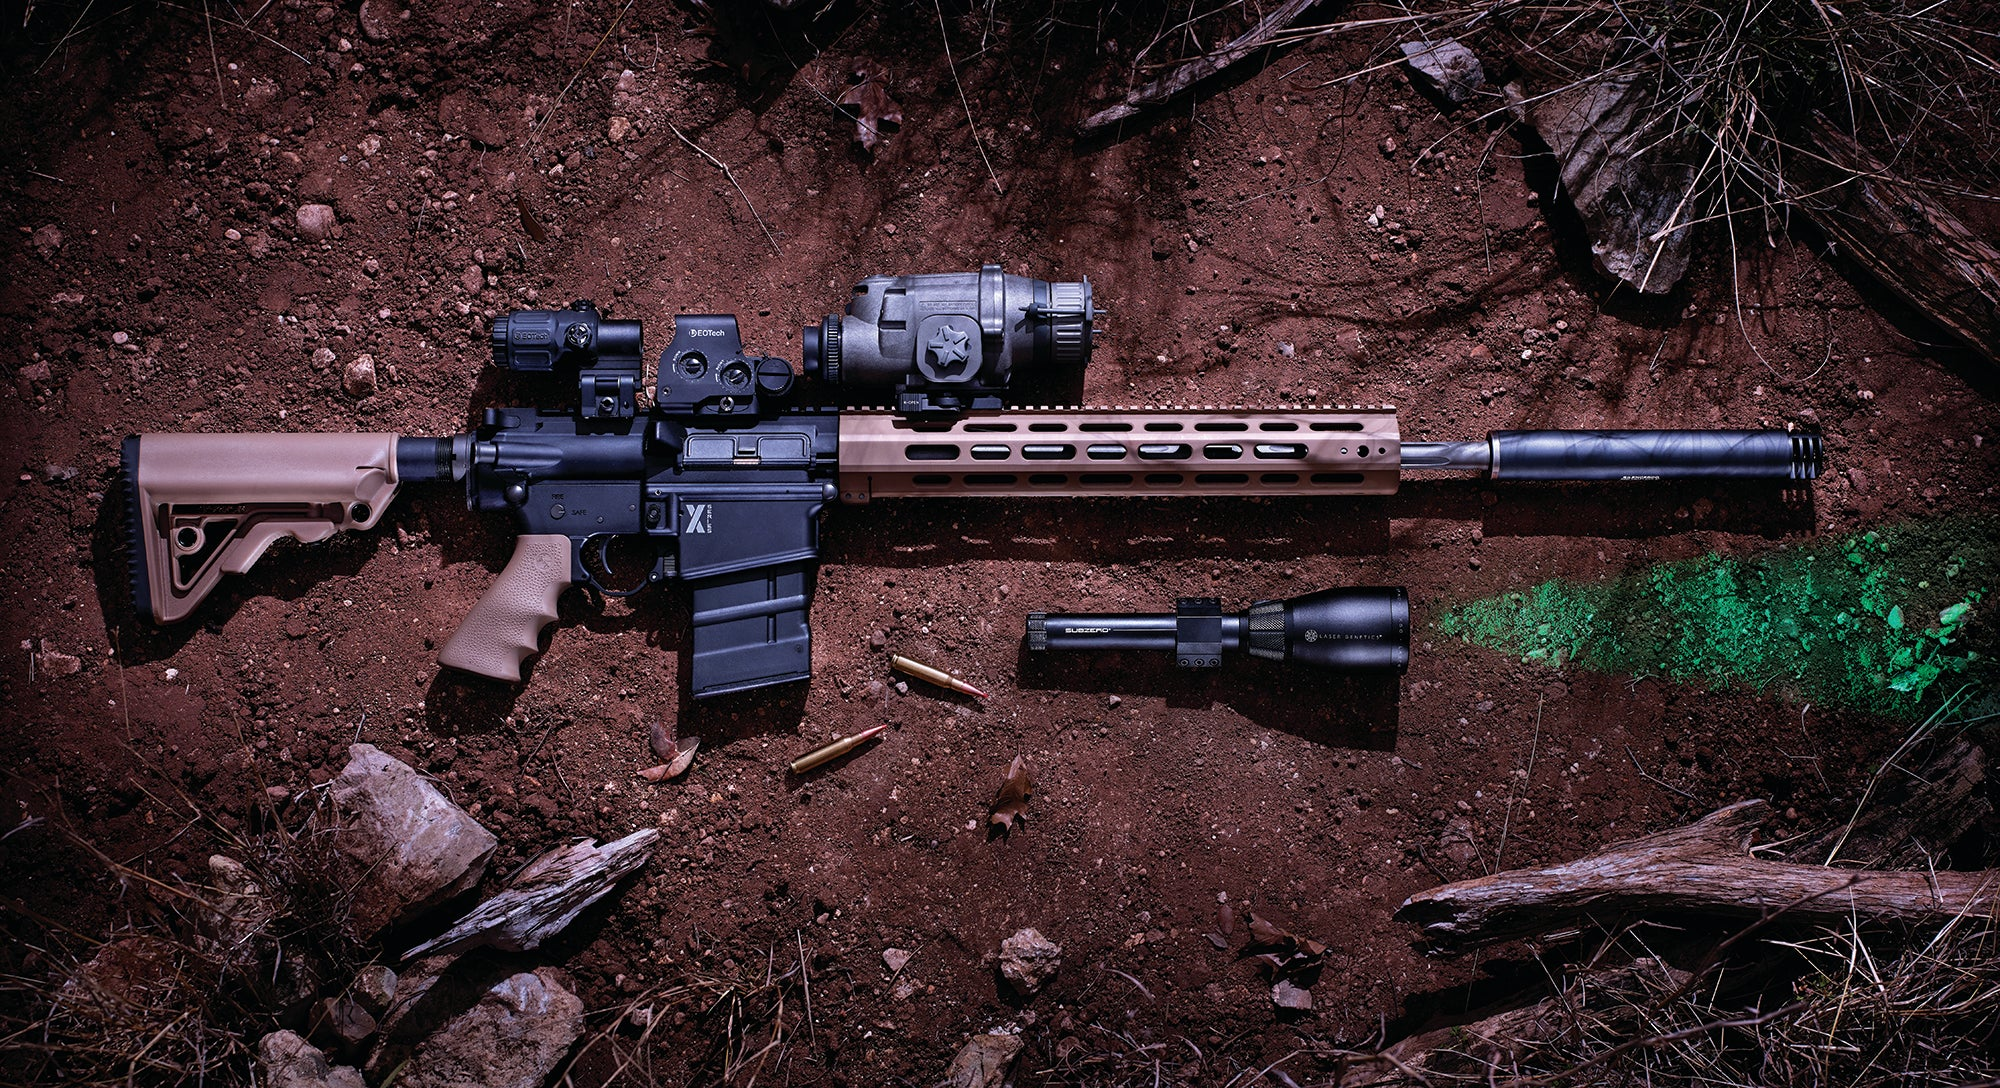 Pig Rig: The Ultimate Rifle for Hunting Wild Hogs